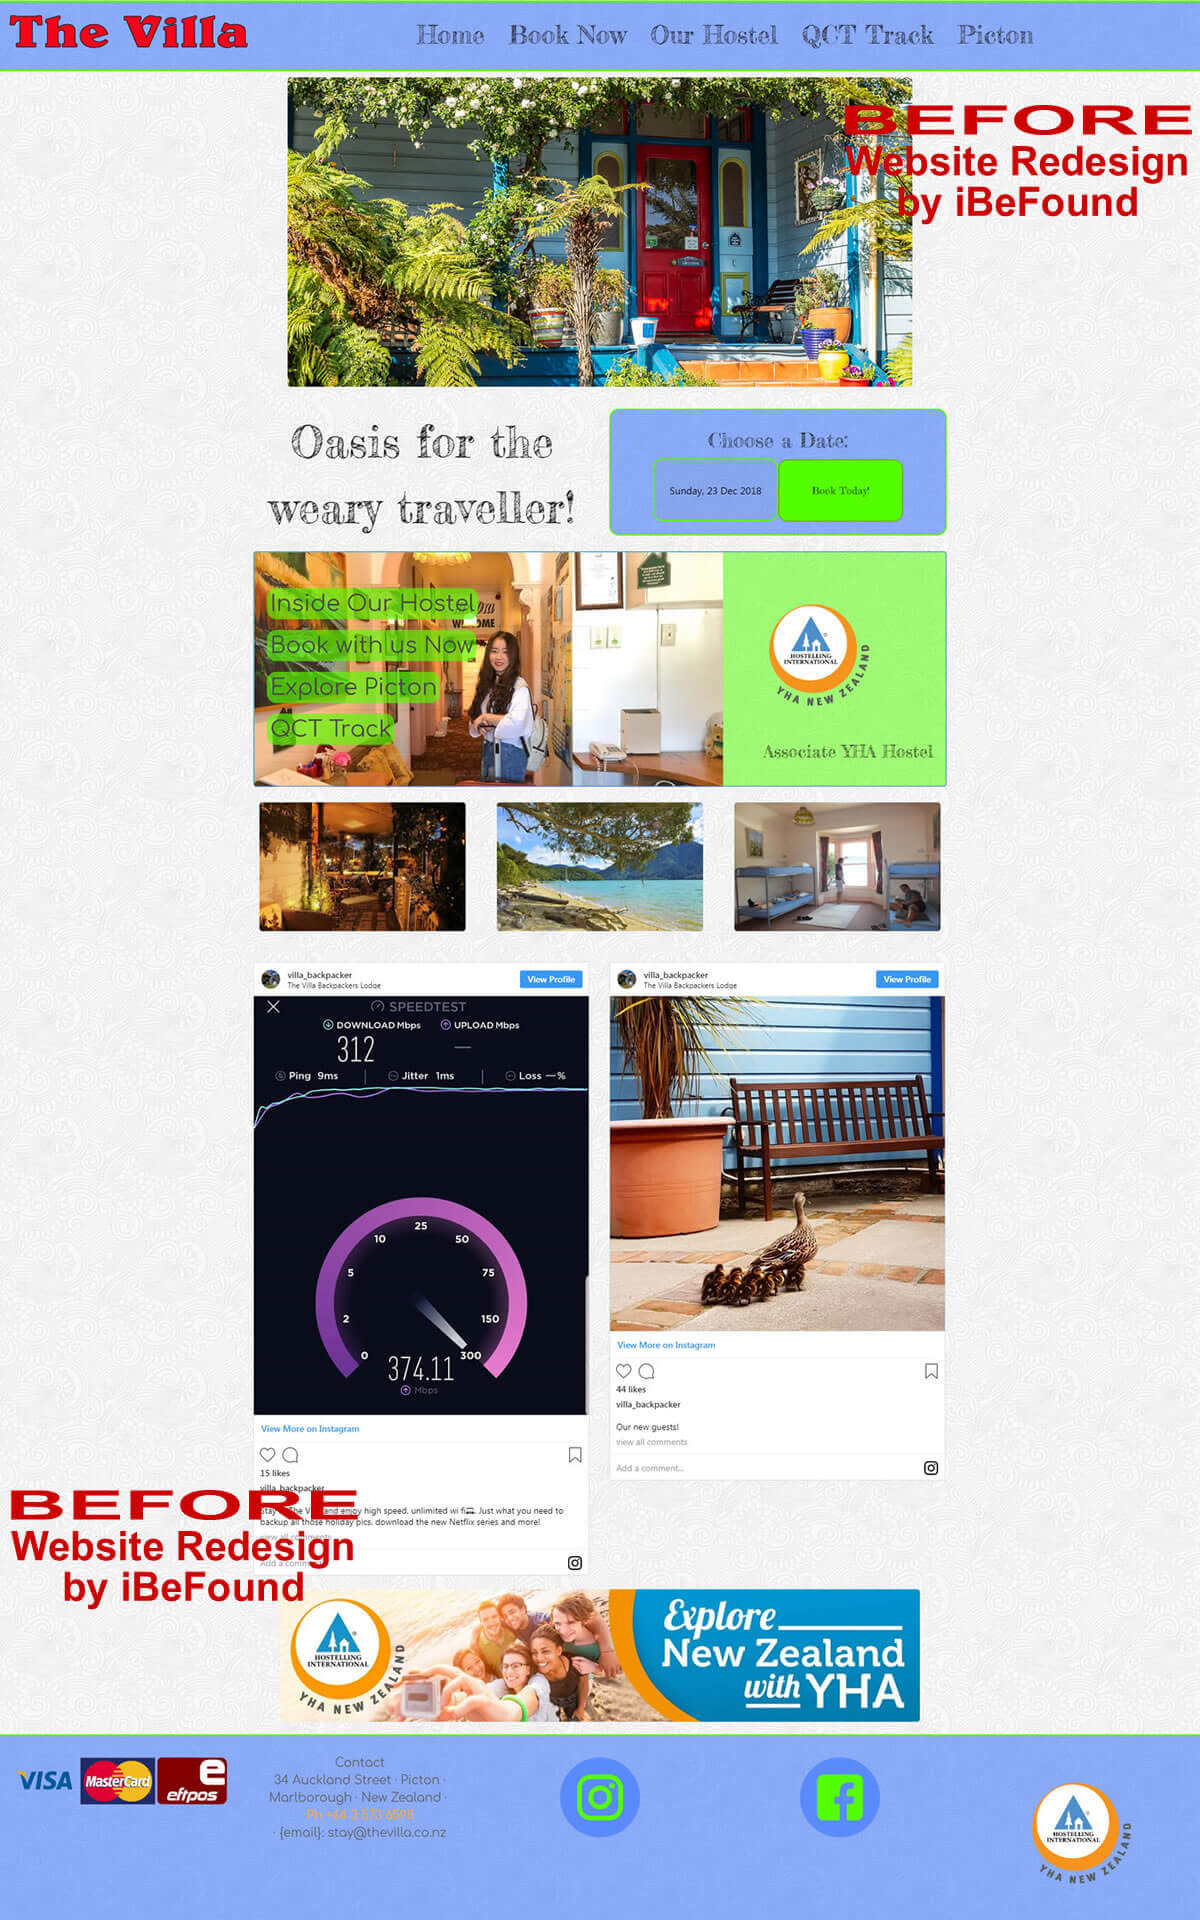 Homepage Of The Villa Backpackers Lodge Before Website Redesign By iBeFound